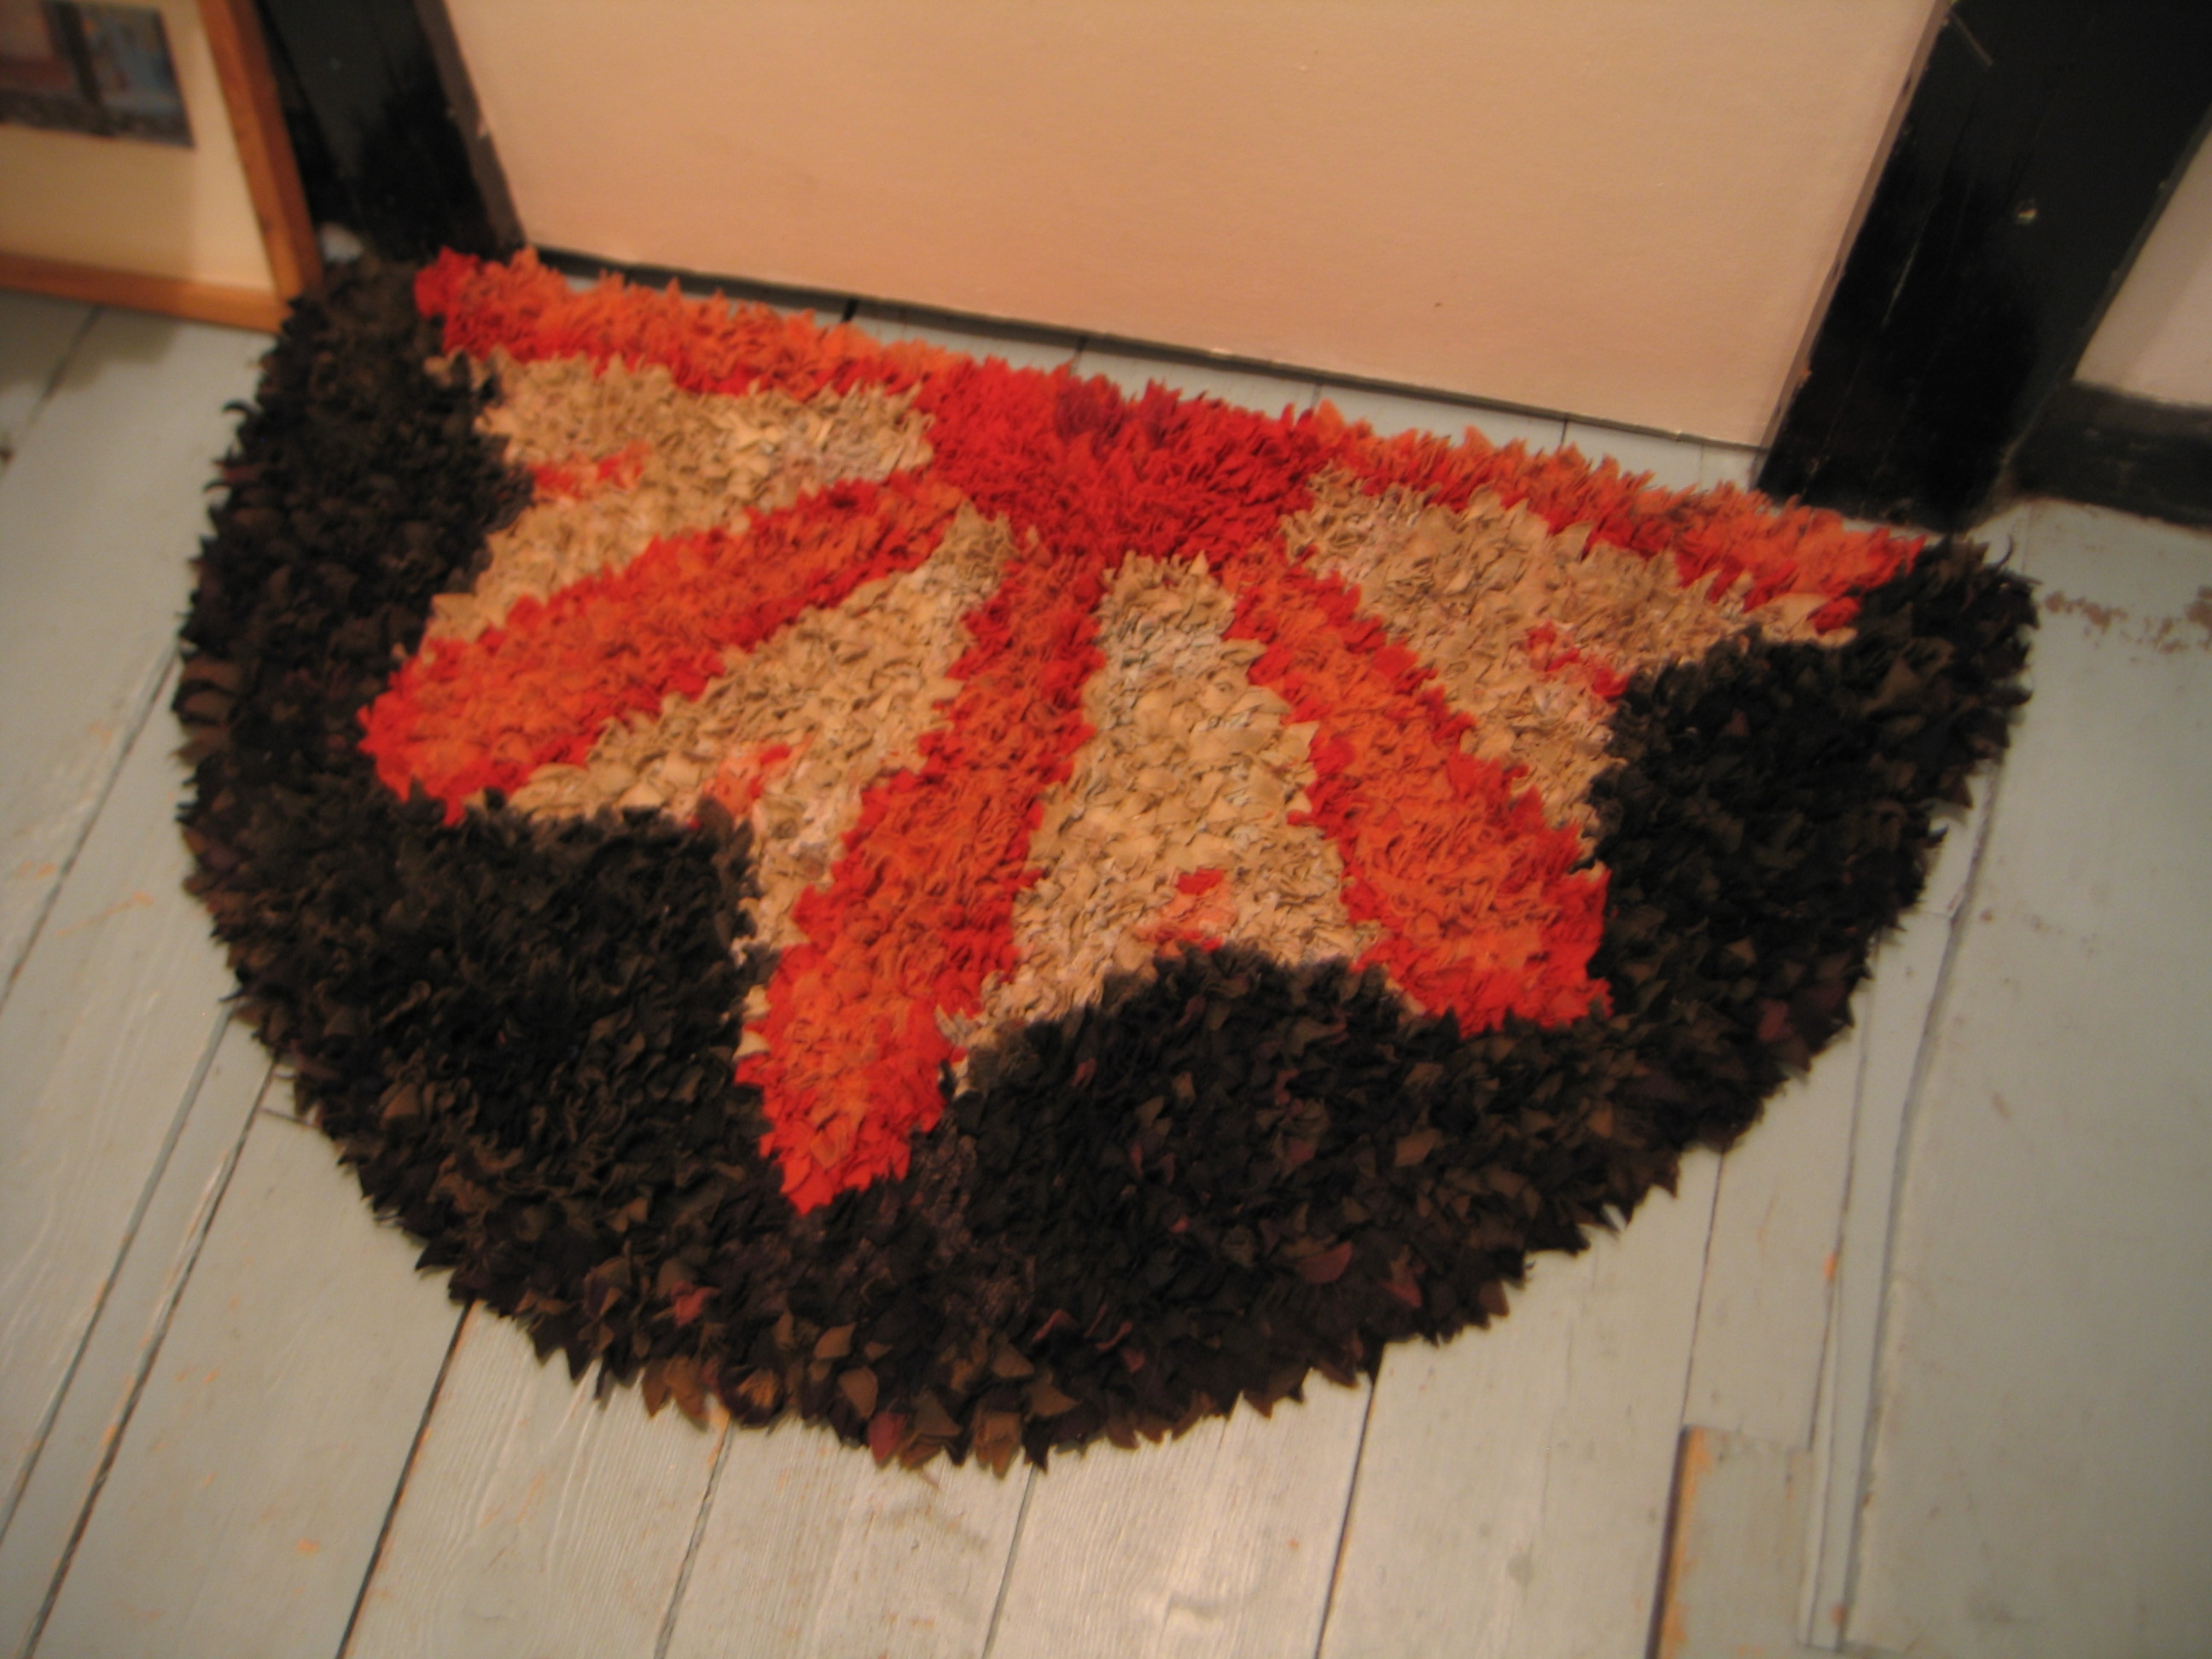 One of the rag rugs